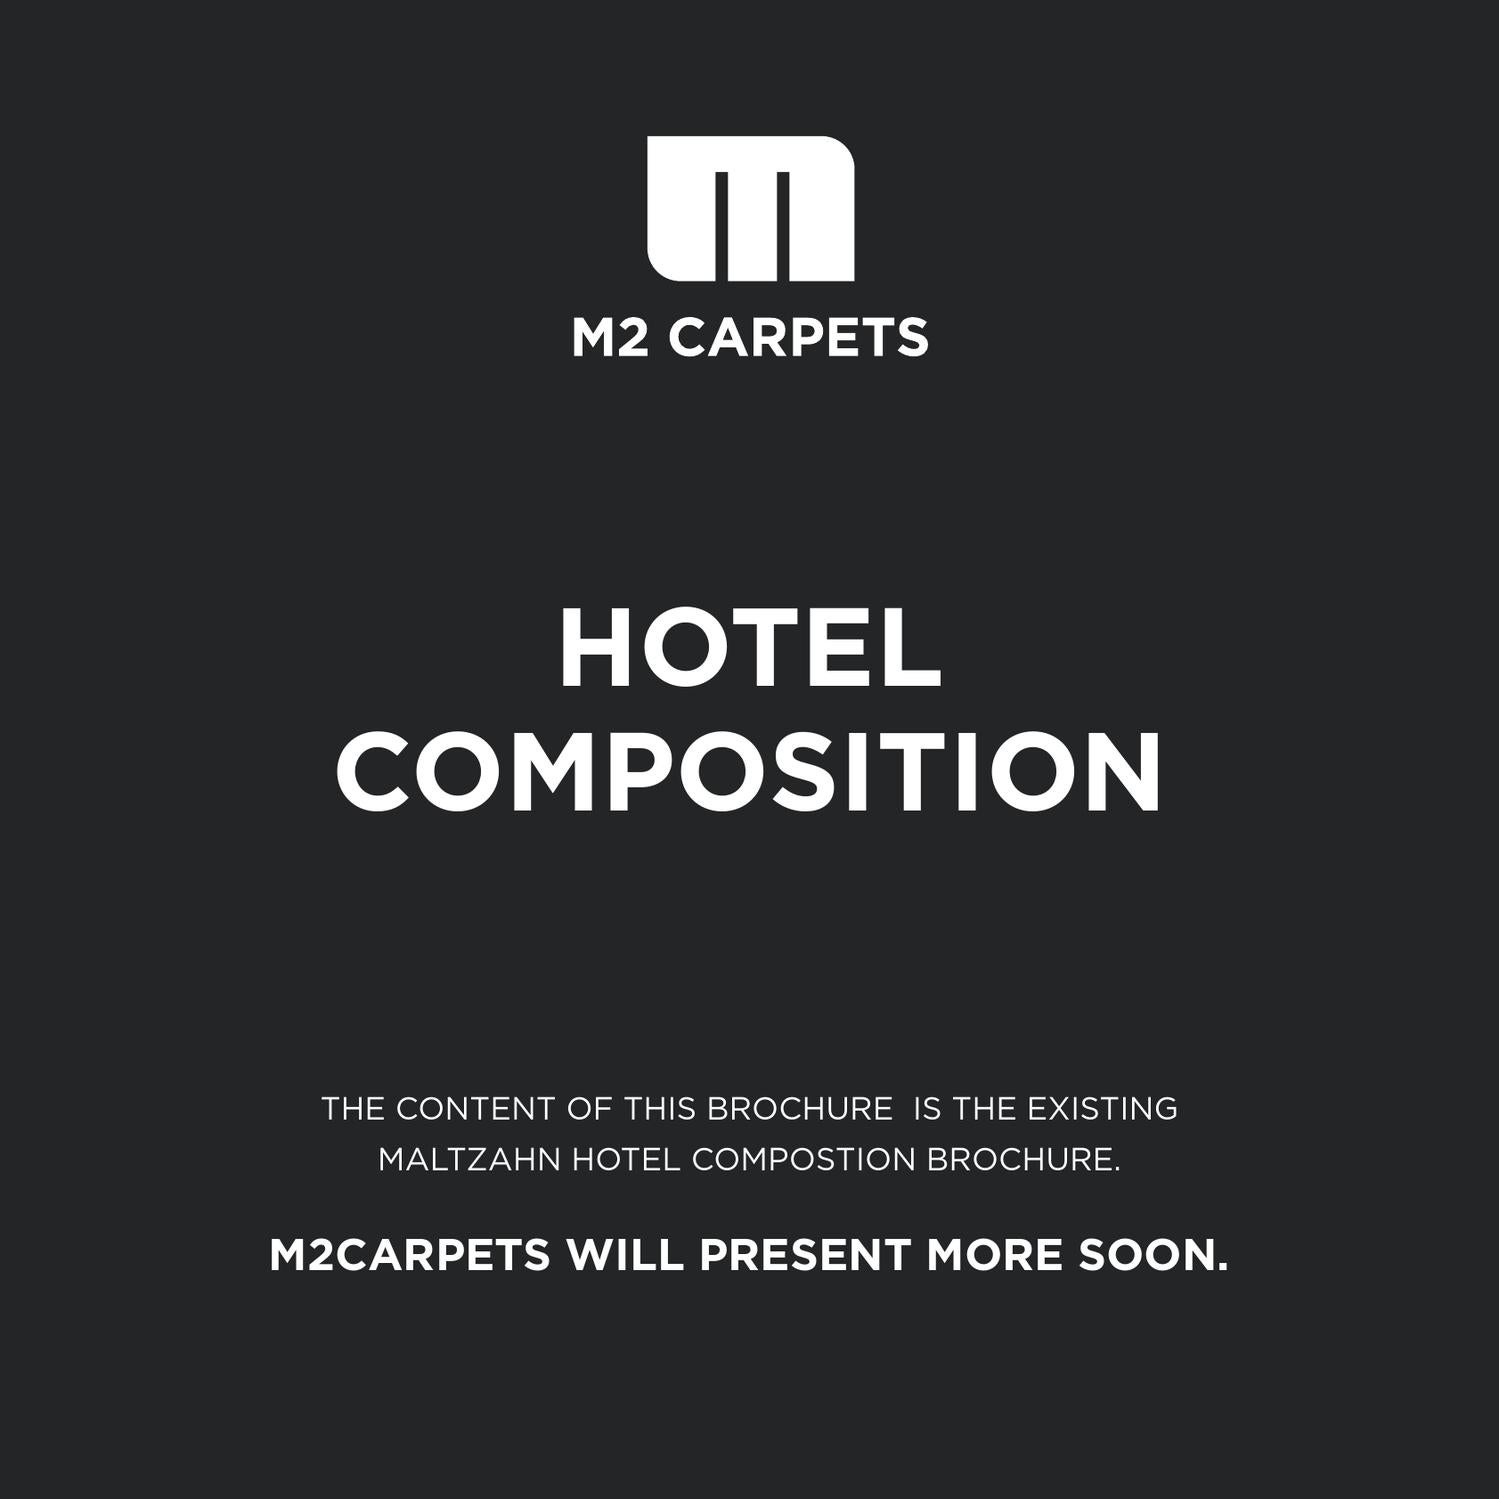 M2 Carpets brochure Hotel Composition by Issuu M2Carpets - issuu